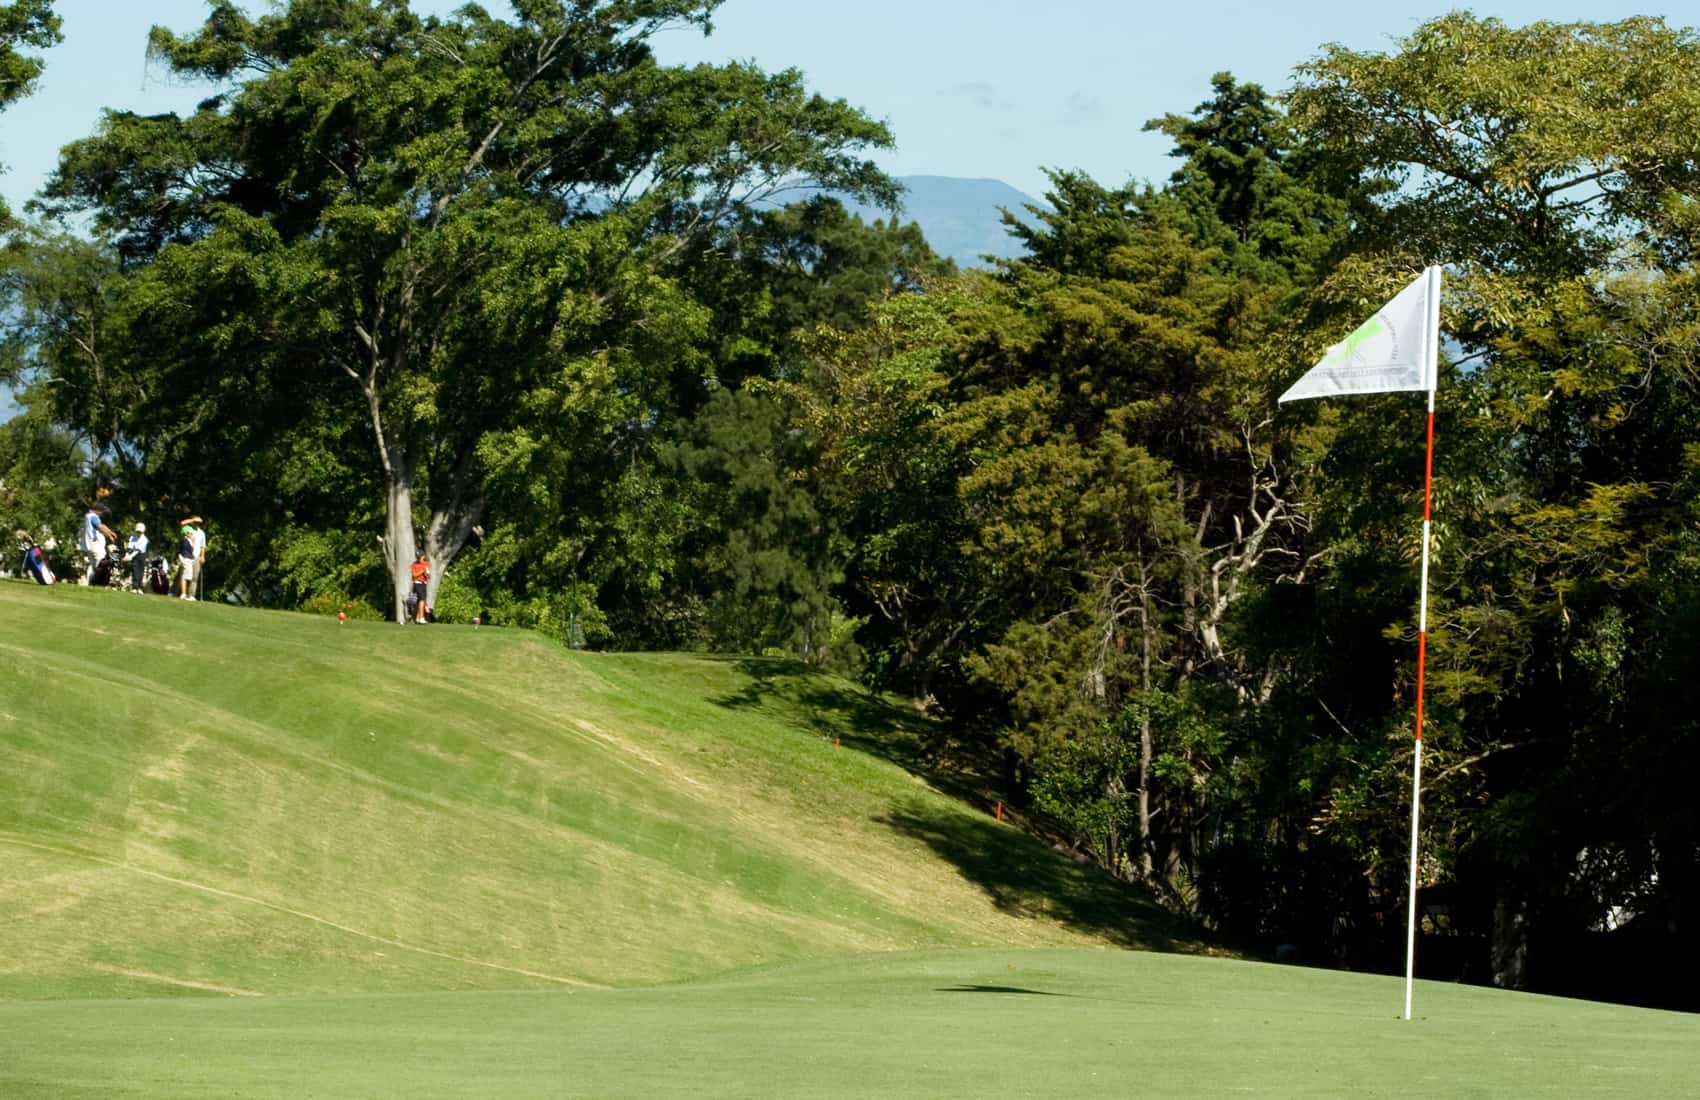 Golf course in Guanacaste